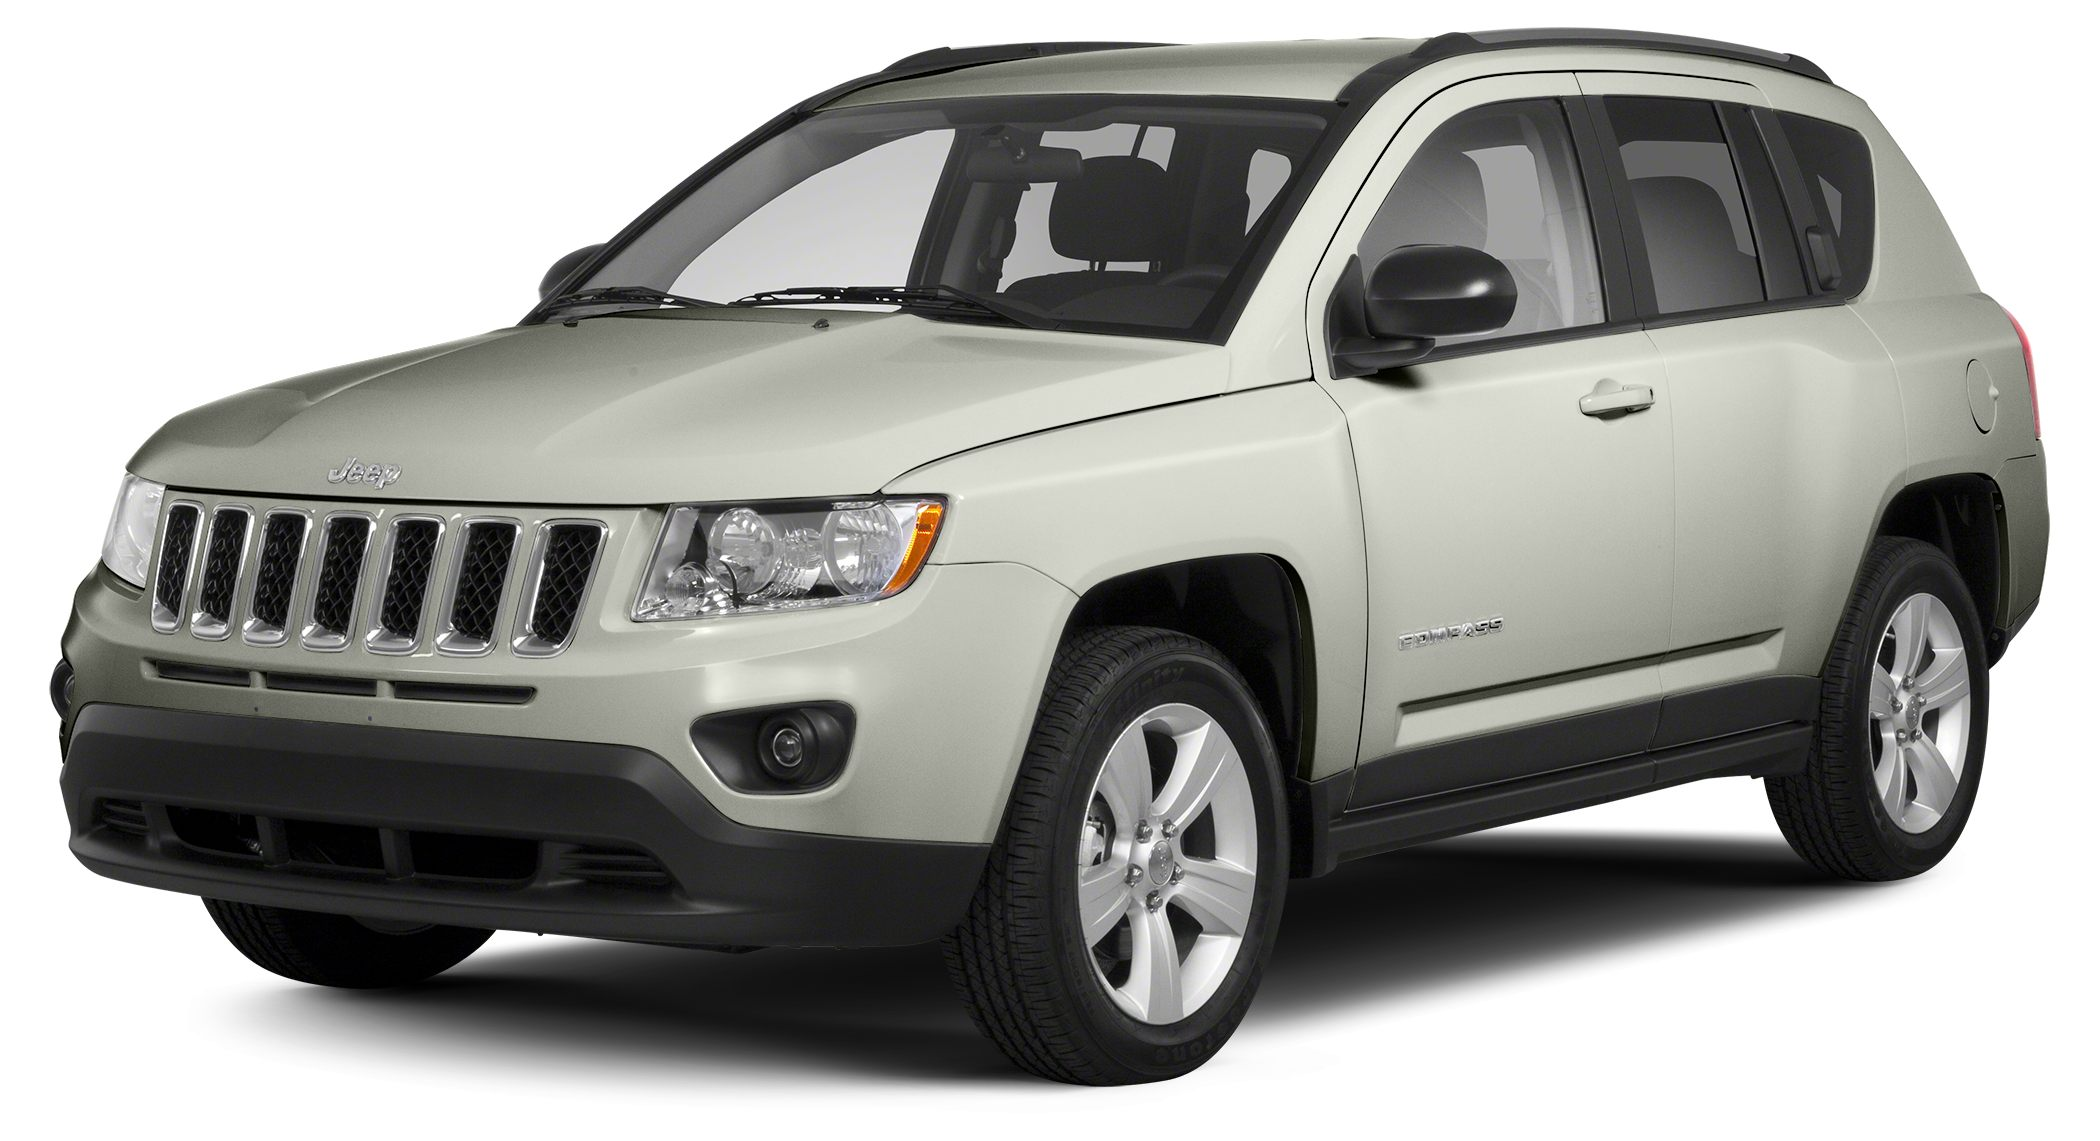 2013 Jeep Compass Limited PRICE DROP FROM 22977 EPA 26 MPG Hwy21 MPG City CARFAX 1-Owner ONL